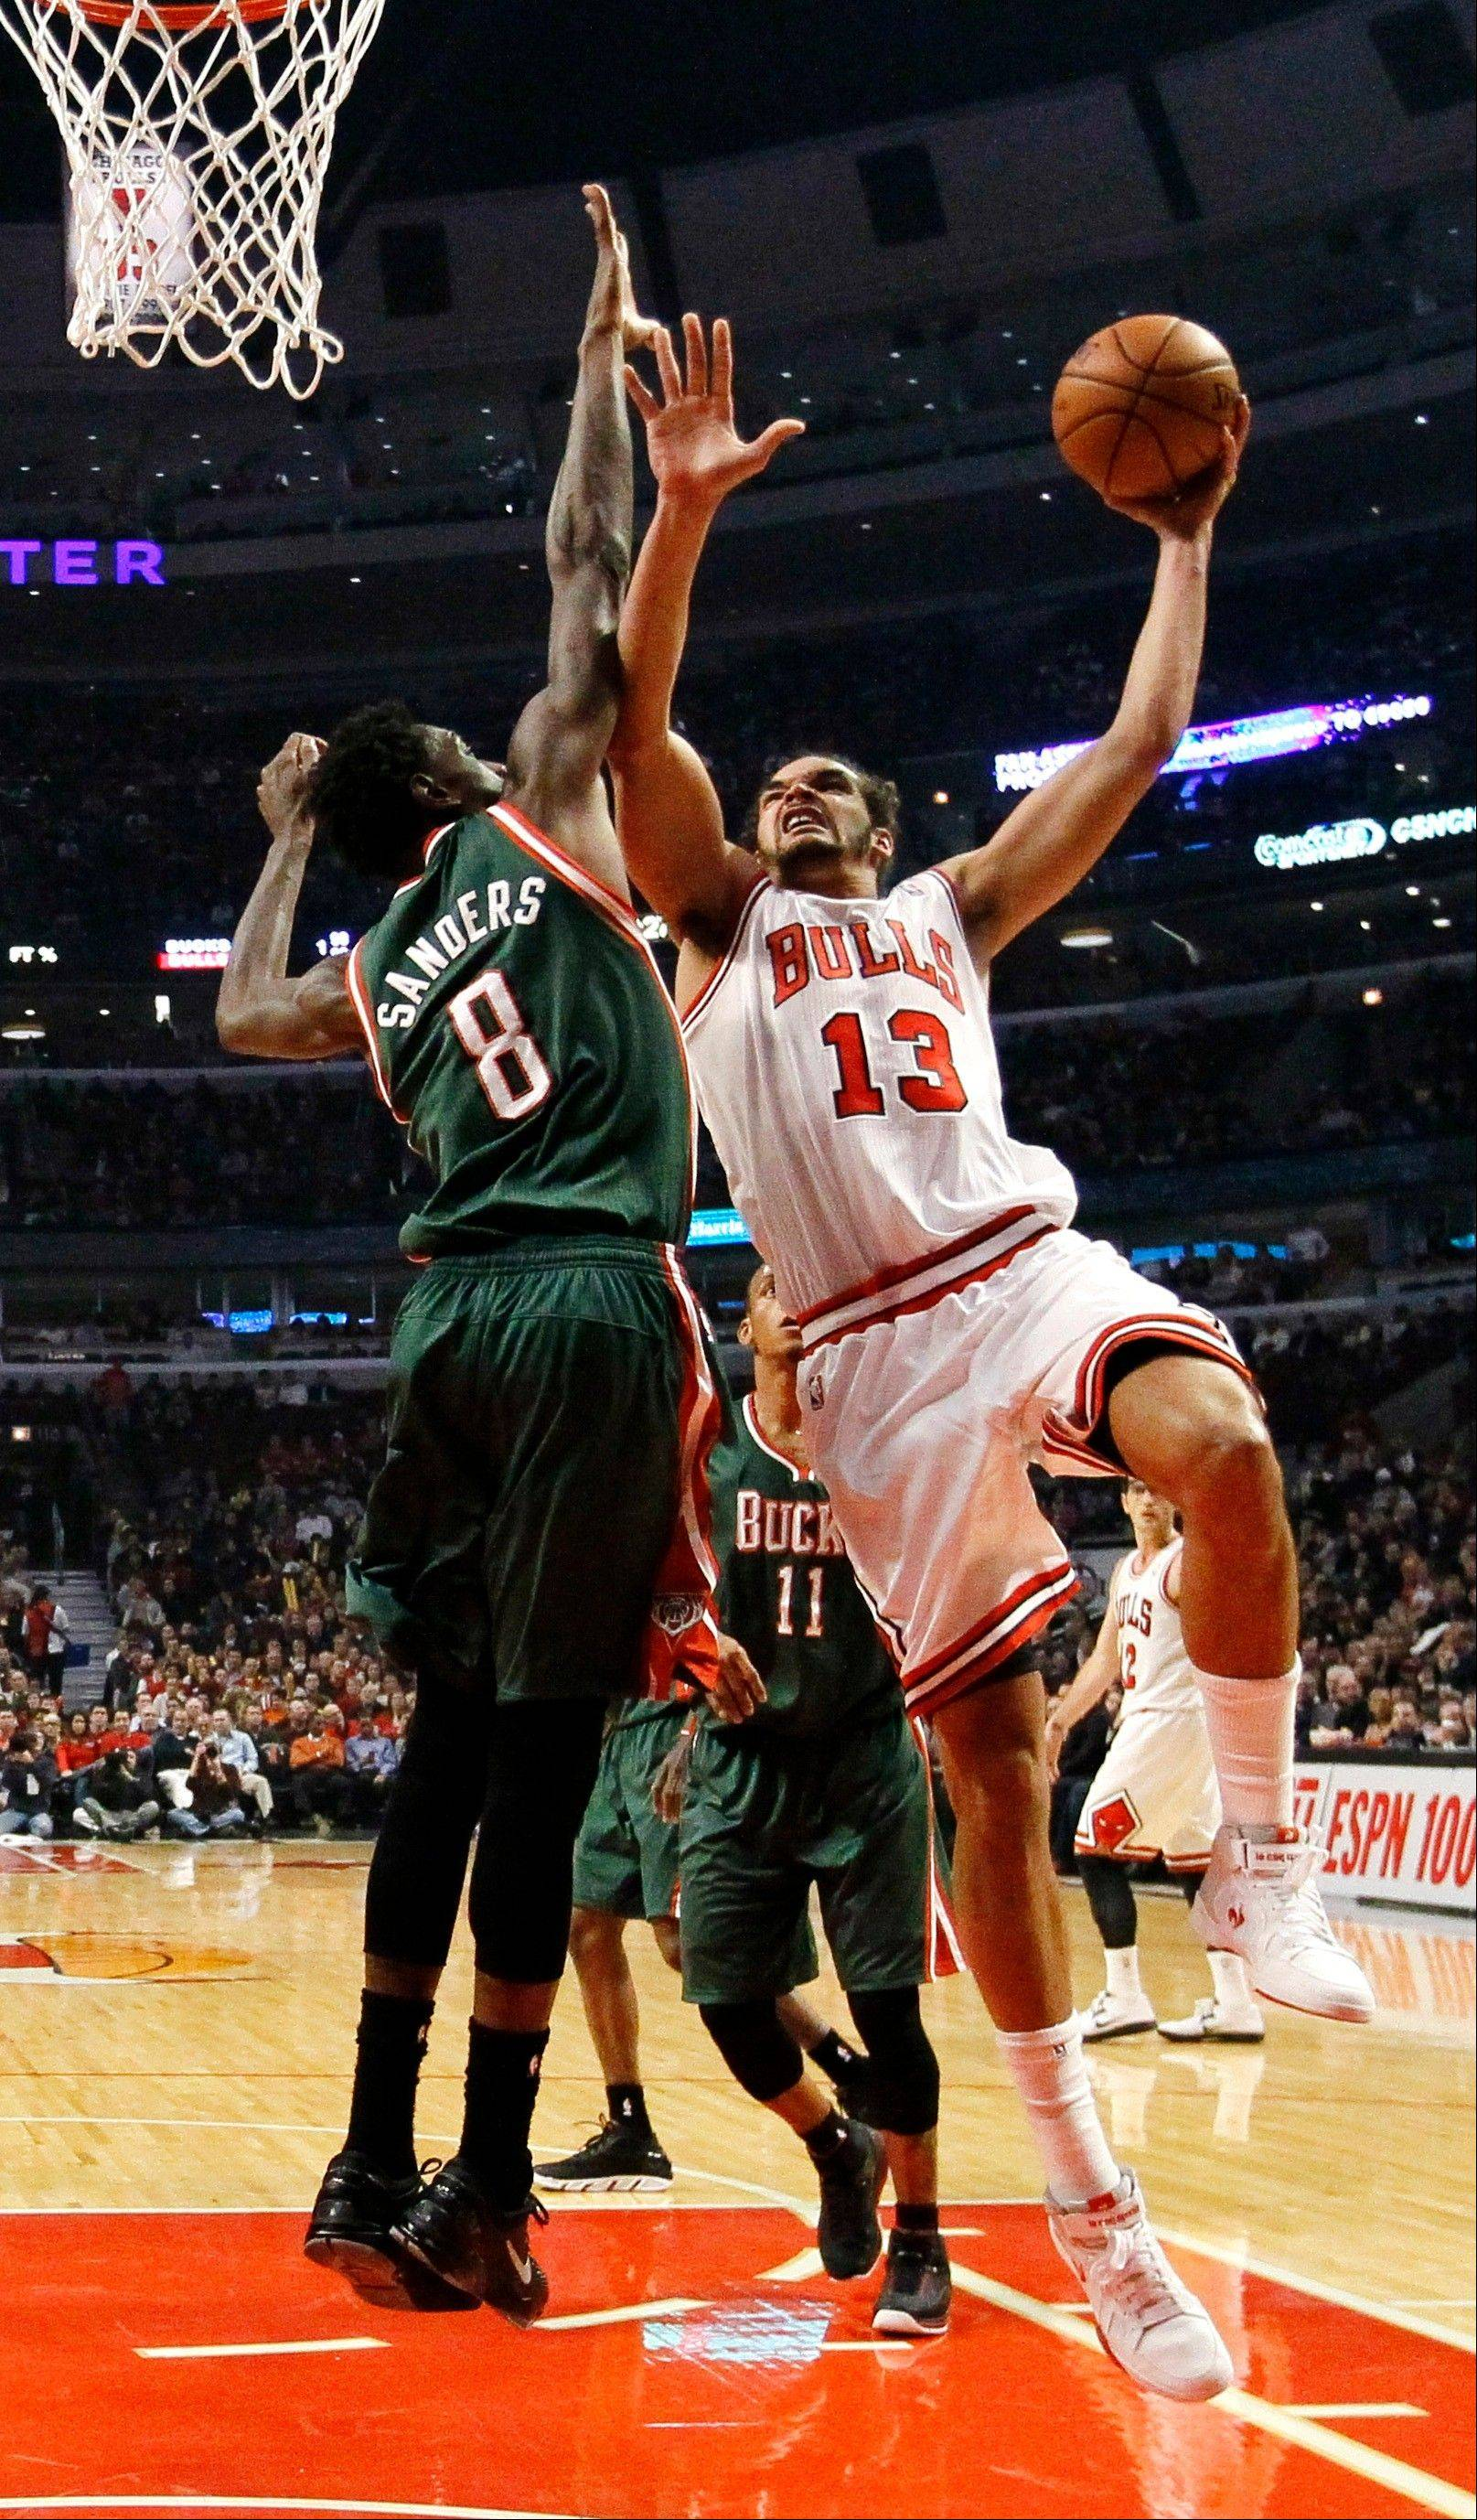 The Bulls� Joakim Noah shoots over Bucks center Larry Sanders in the first half Monday at the United Center. The Bucks rallied from a big deficit to win 93-92.